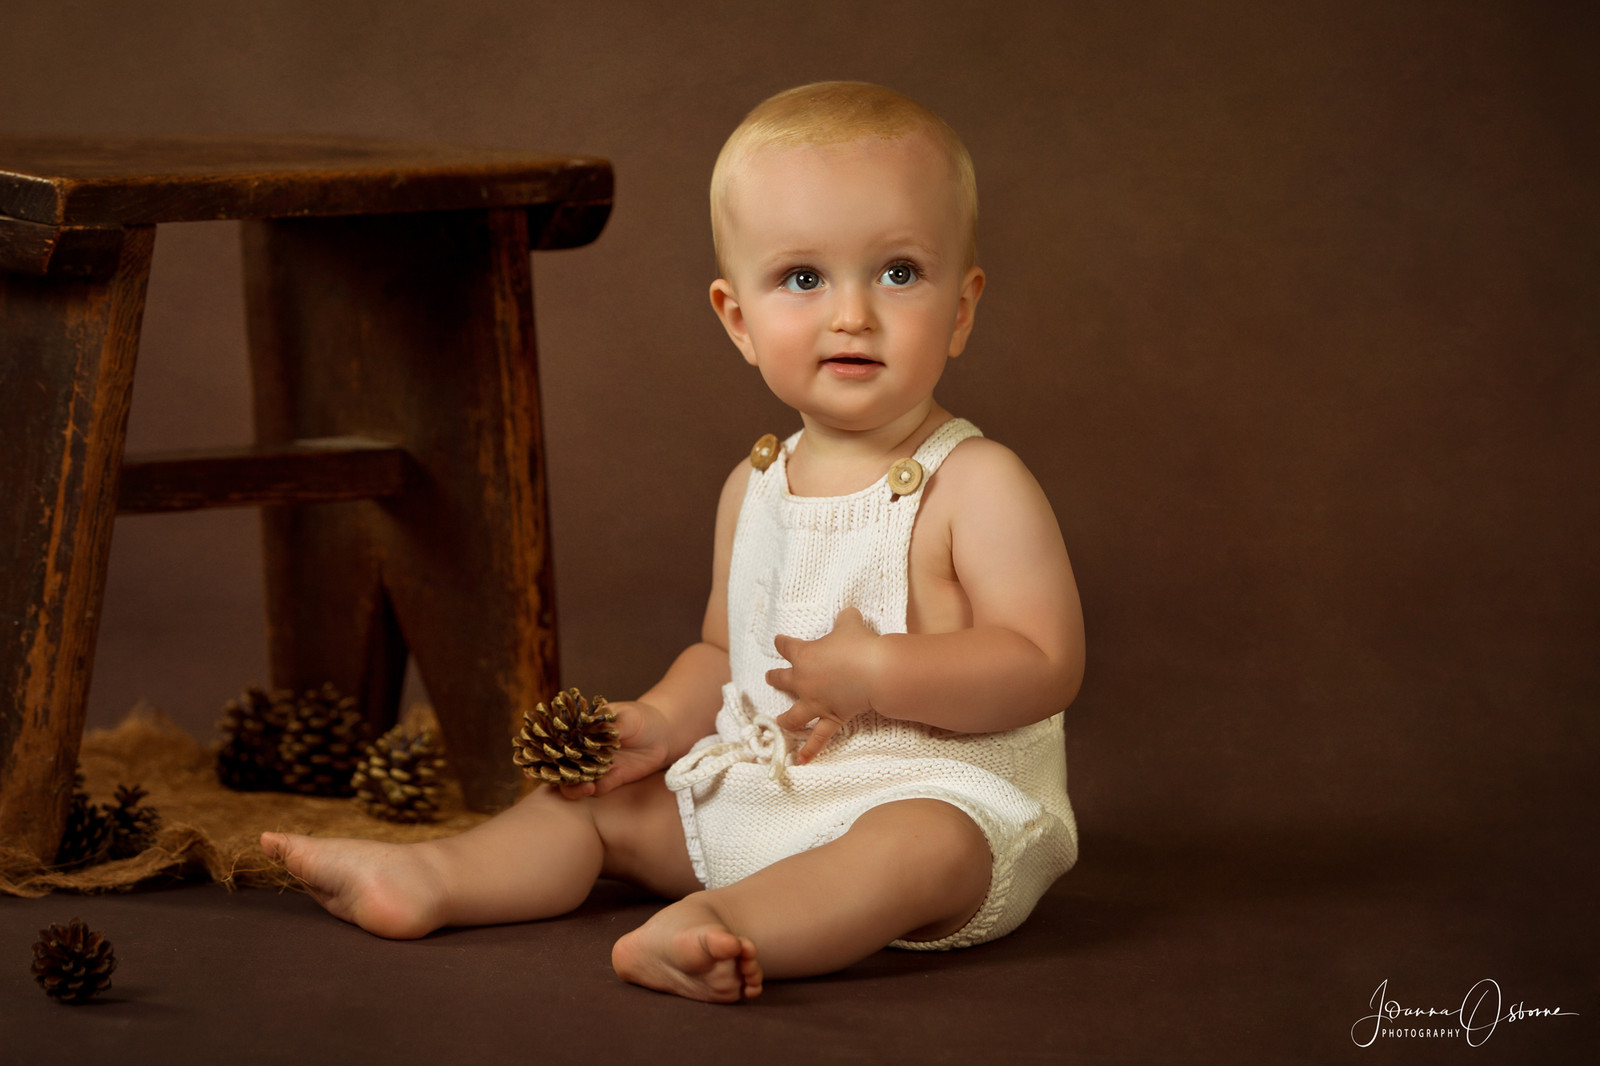 Cotswolds baby photographer based in malmesbury covering wiltshire gloucestershire and the cotswolds